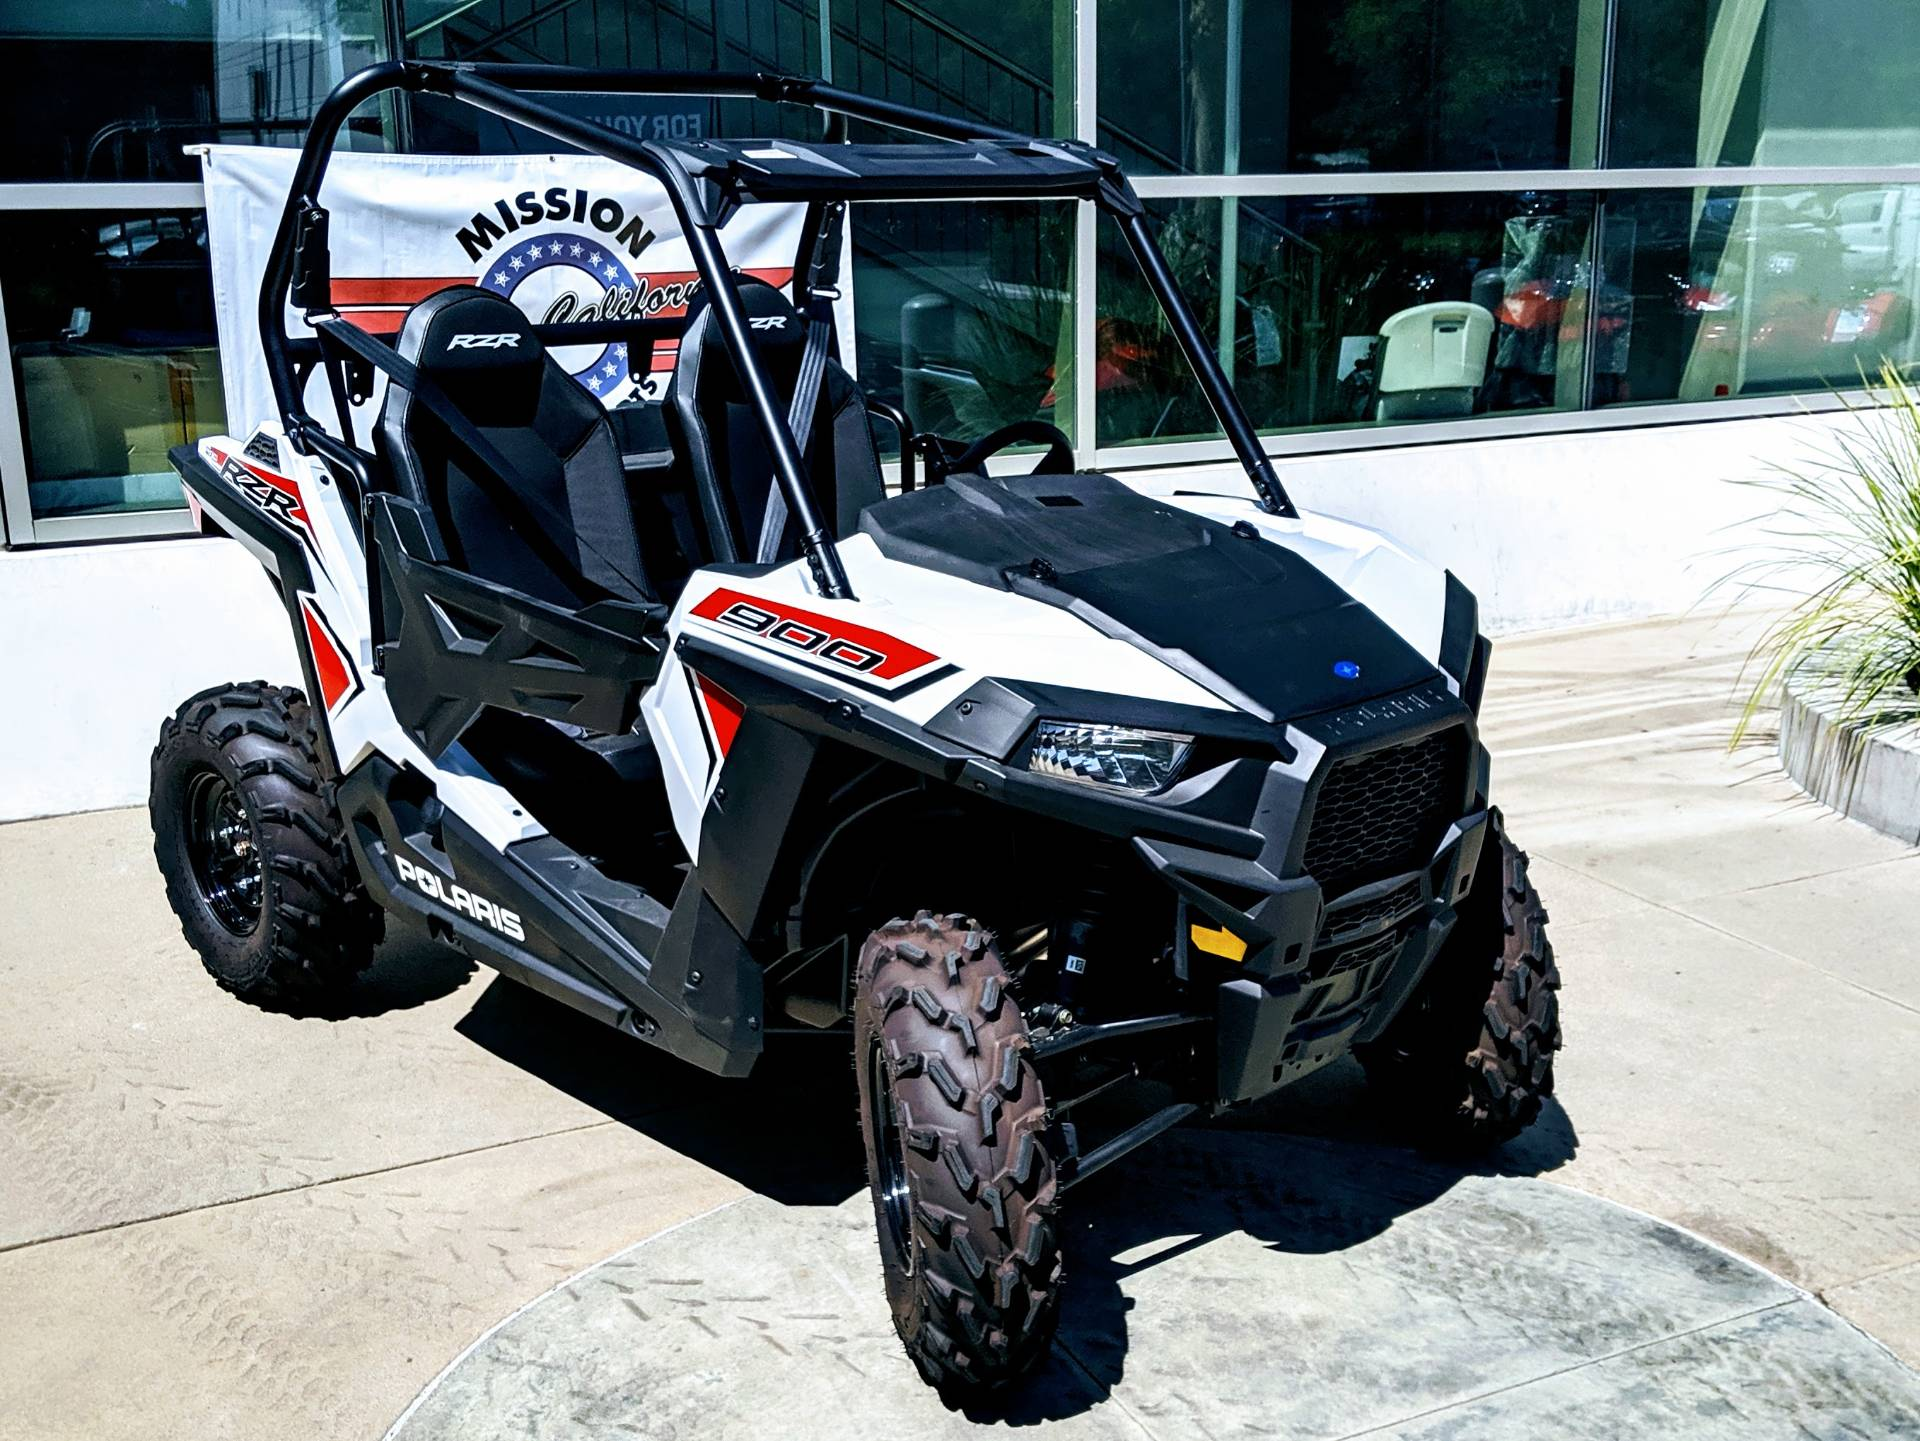 2019 Polaris RZR 900 in Irvine, California - Photo 4